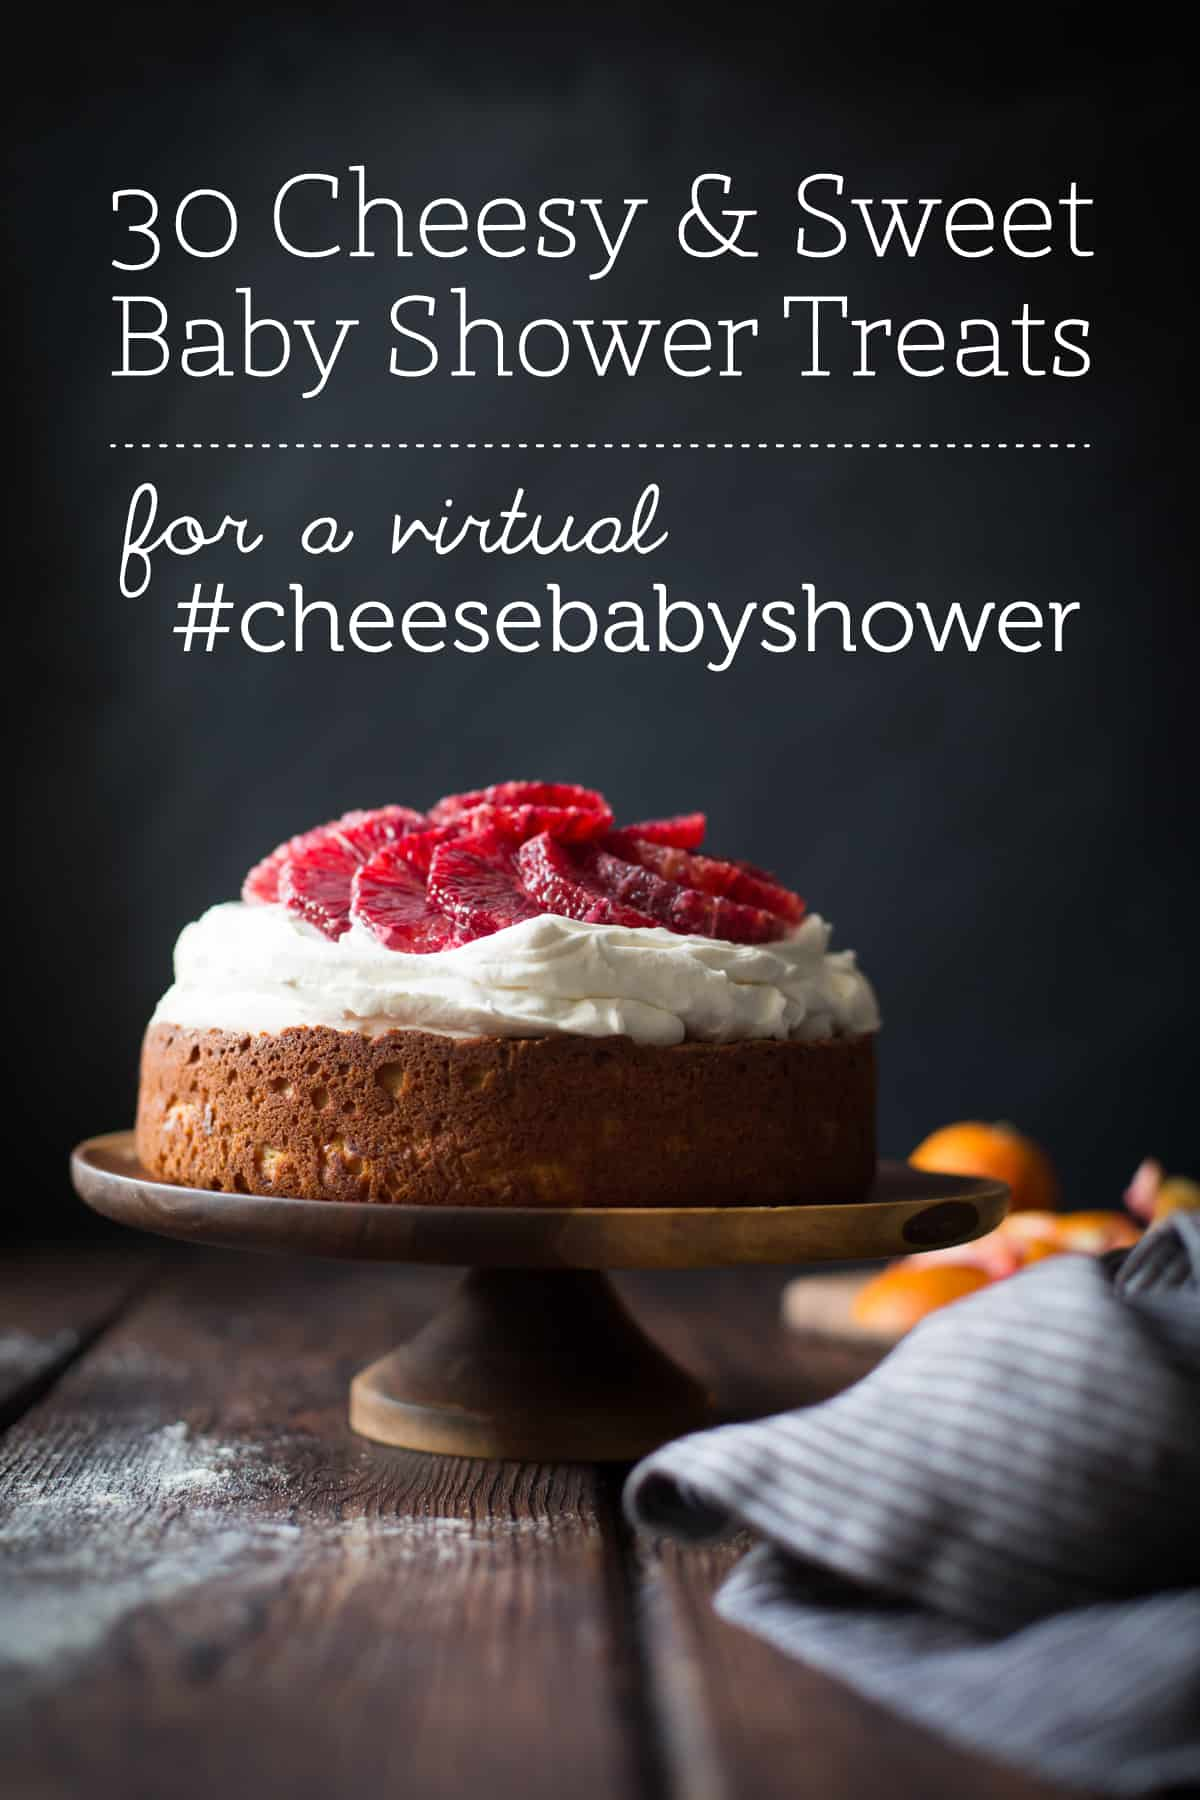 30 Cheesy & Sweet Baby Shower Treats